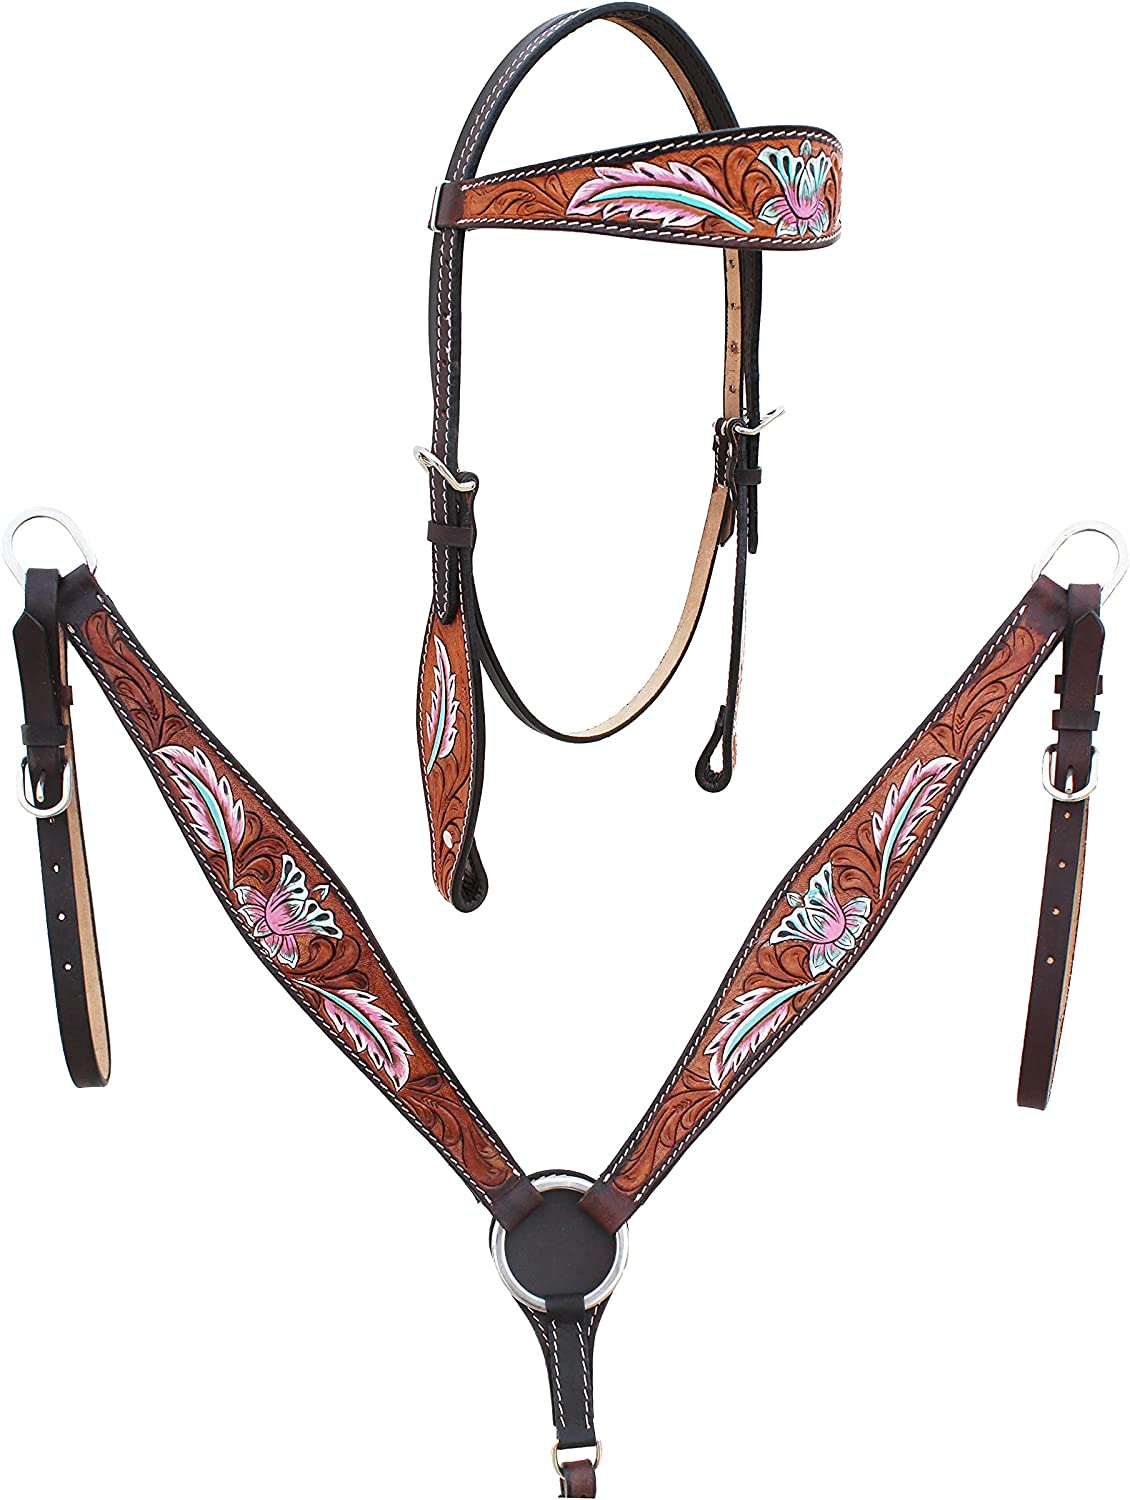 CHALLENGER Horse San Jose Price reduction Mall Western Floral Breast Browband Bridle Tooled